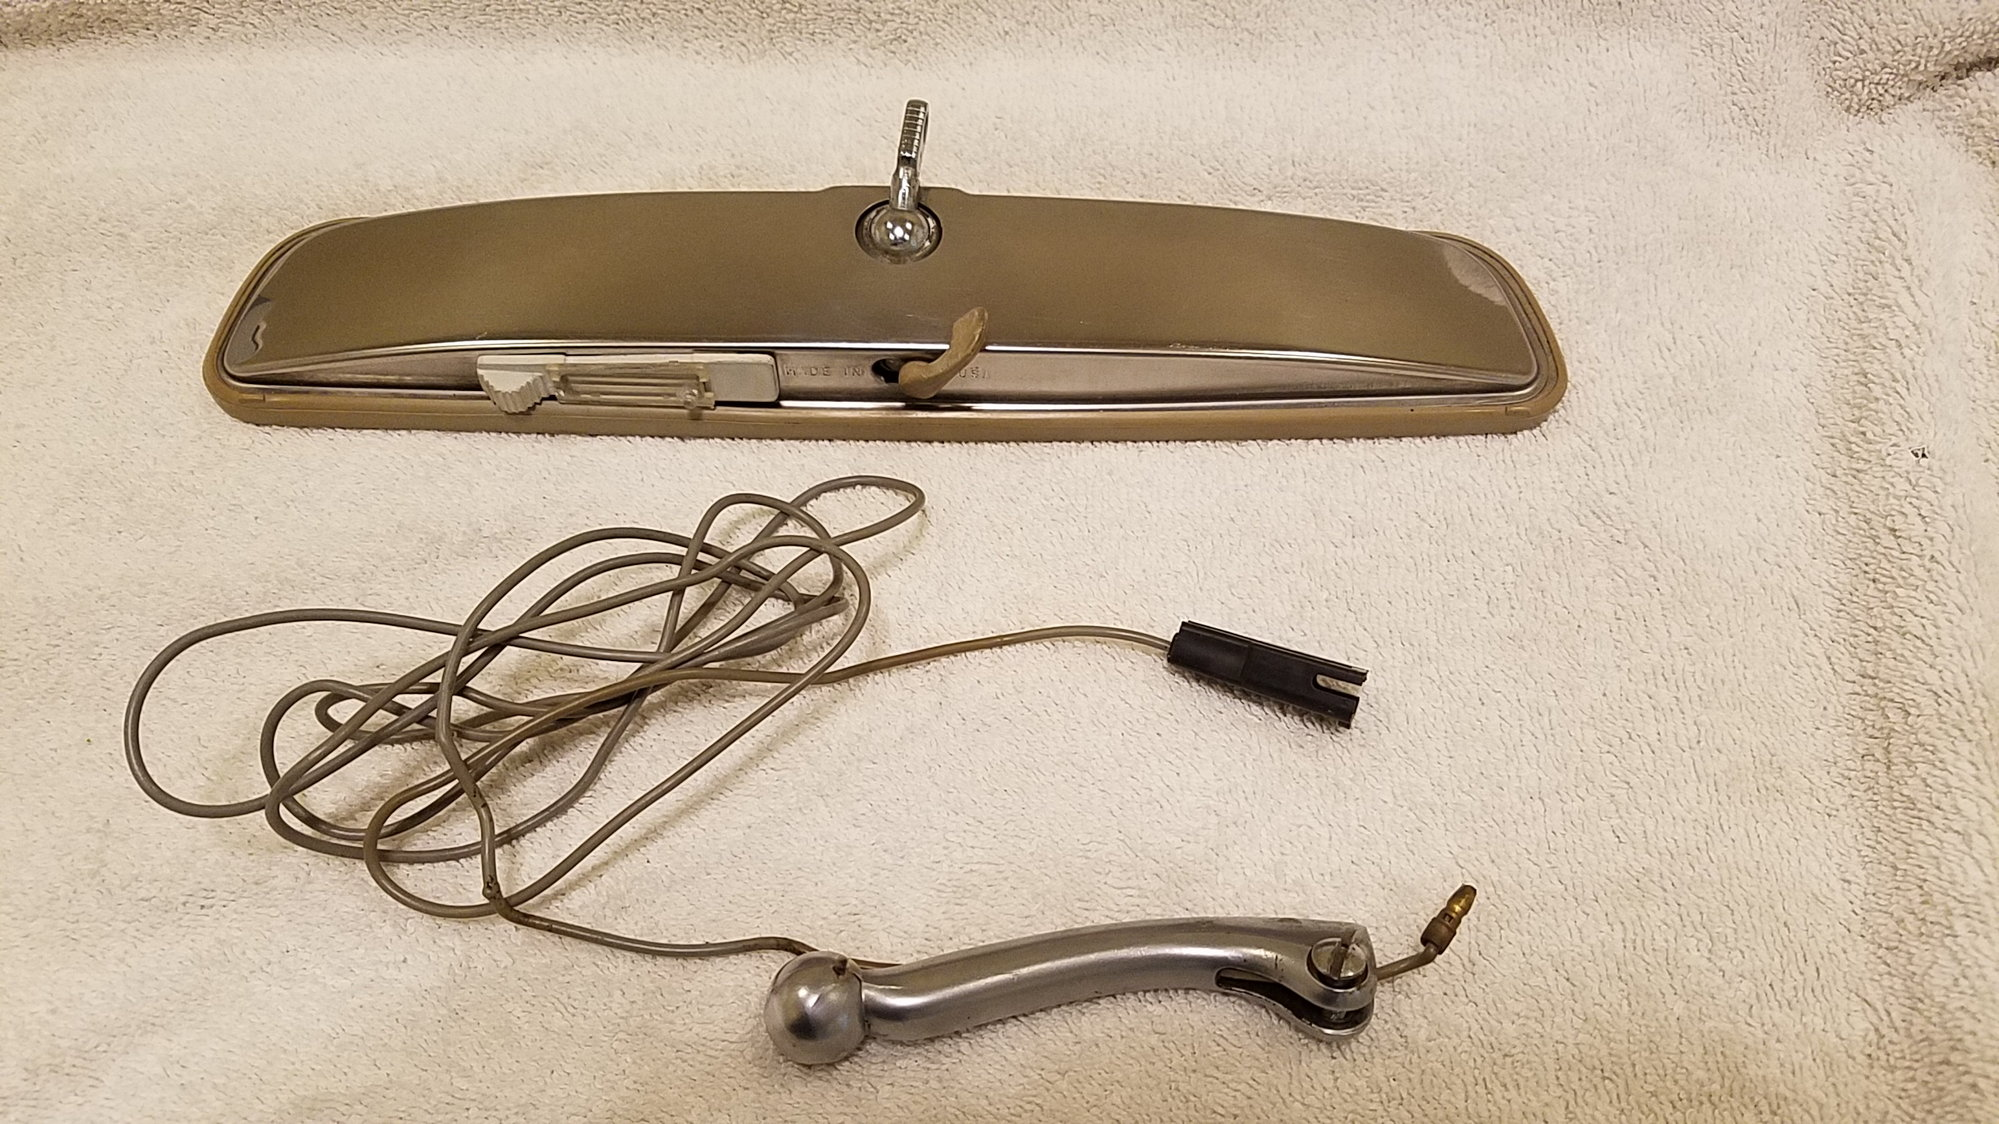 For Sale: 69-72 Rear View Mirror With Map Light